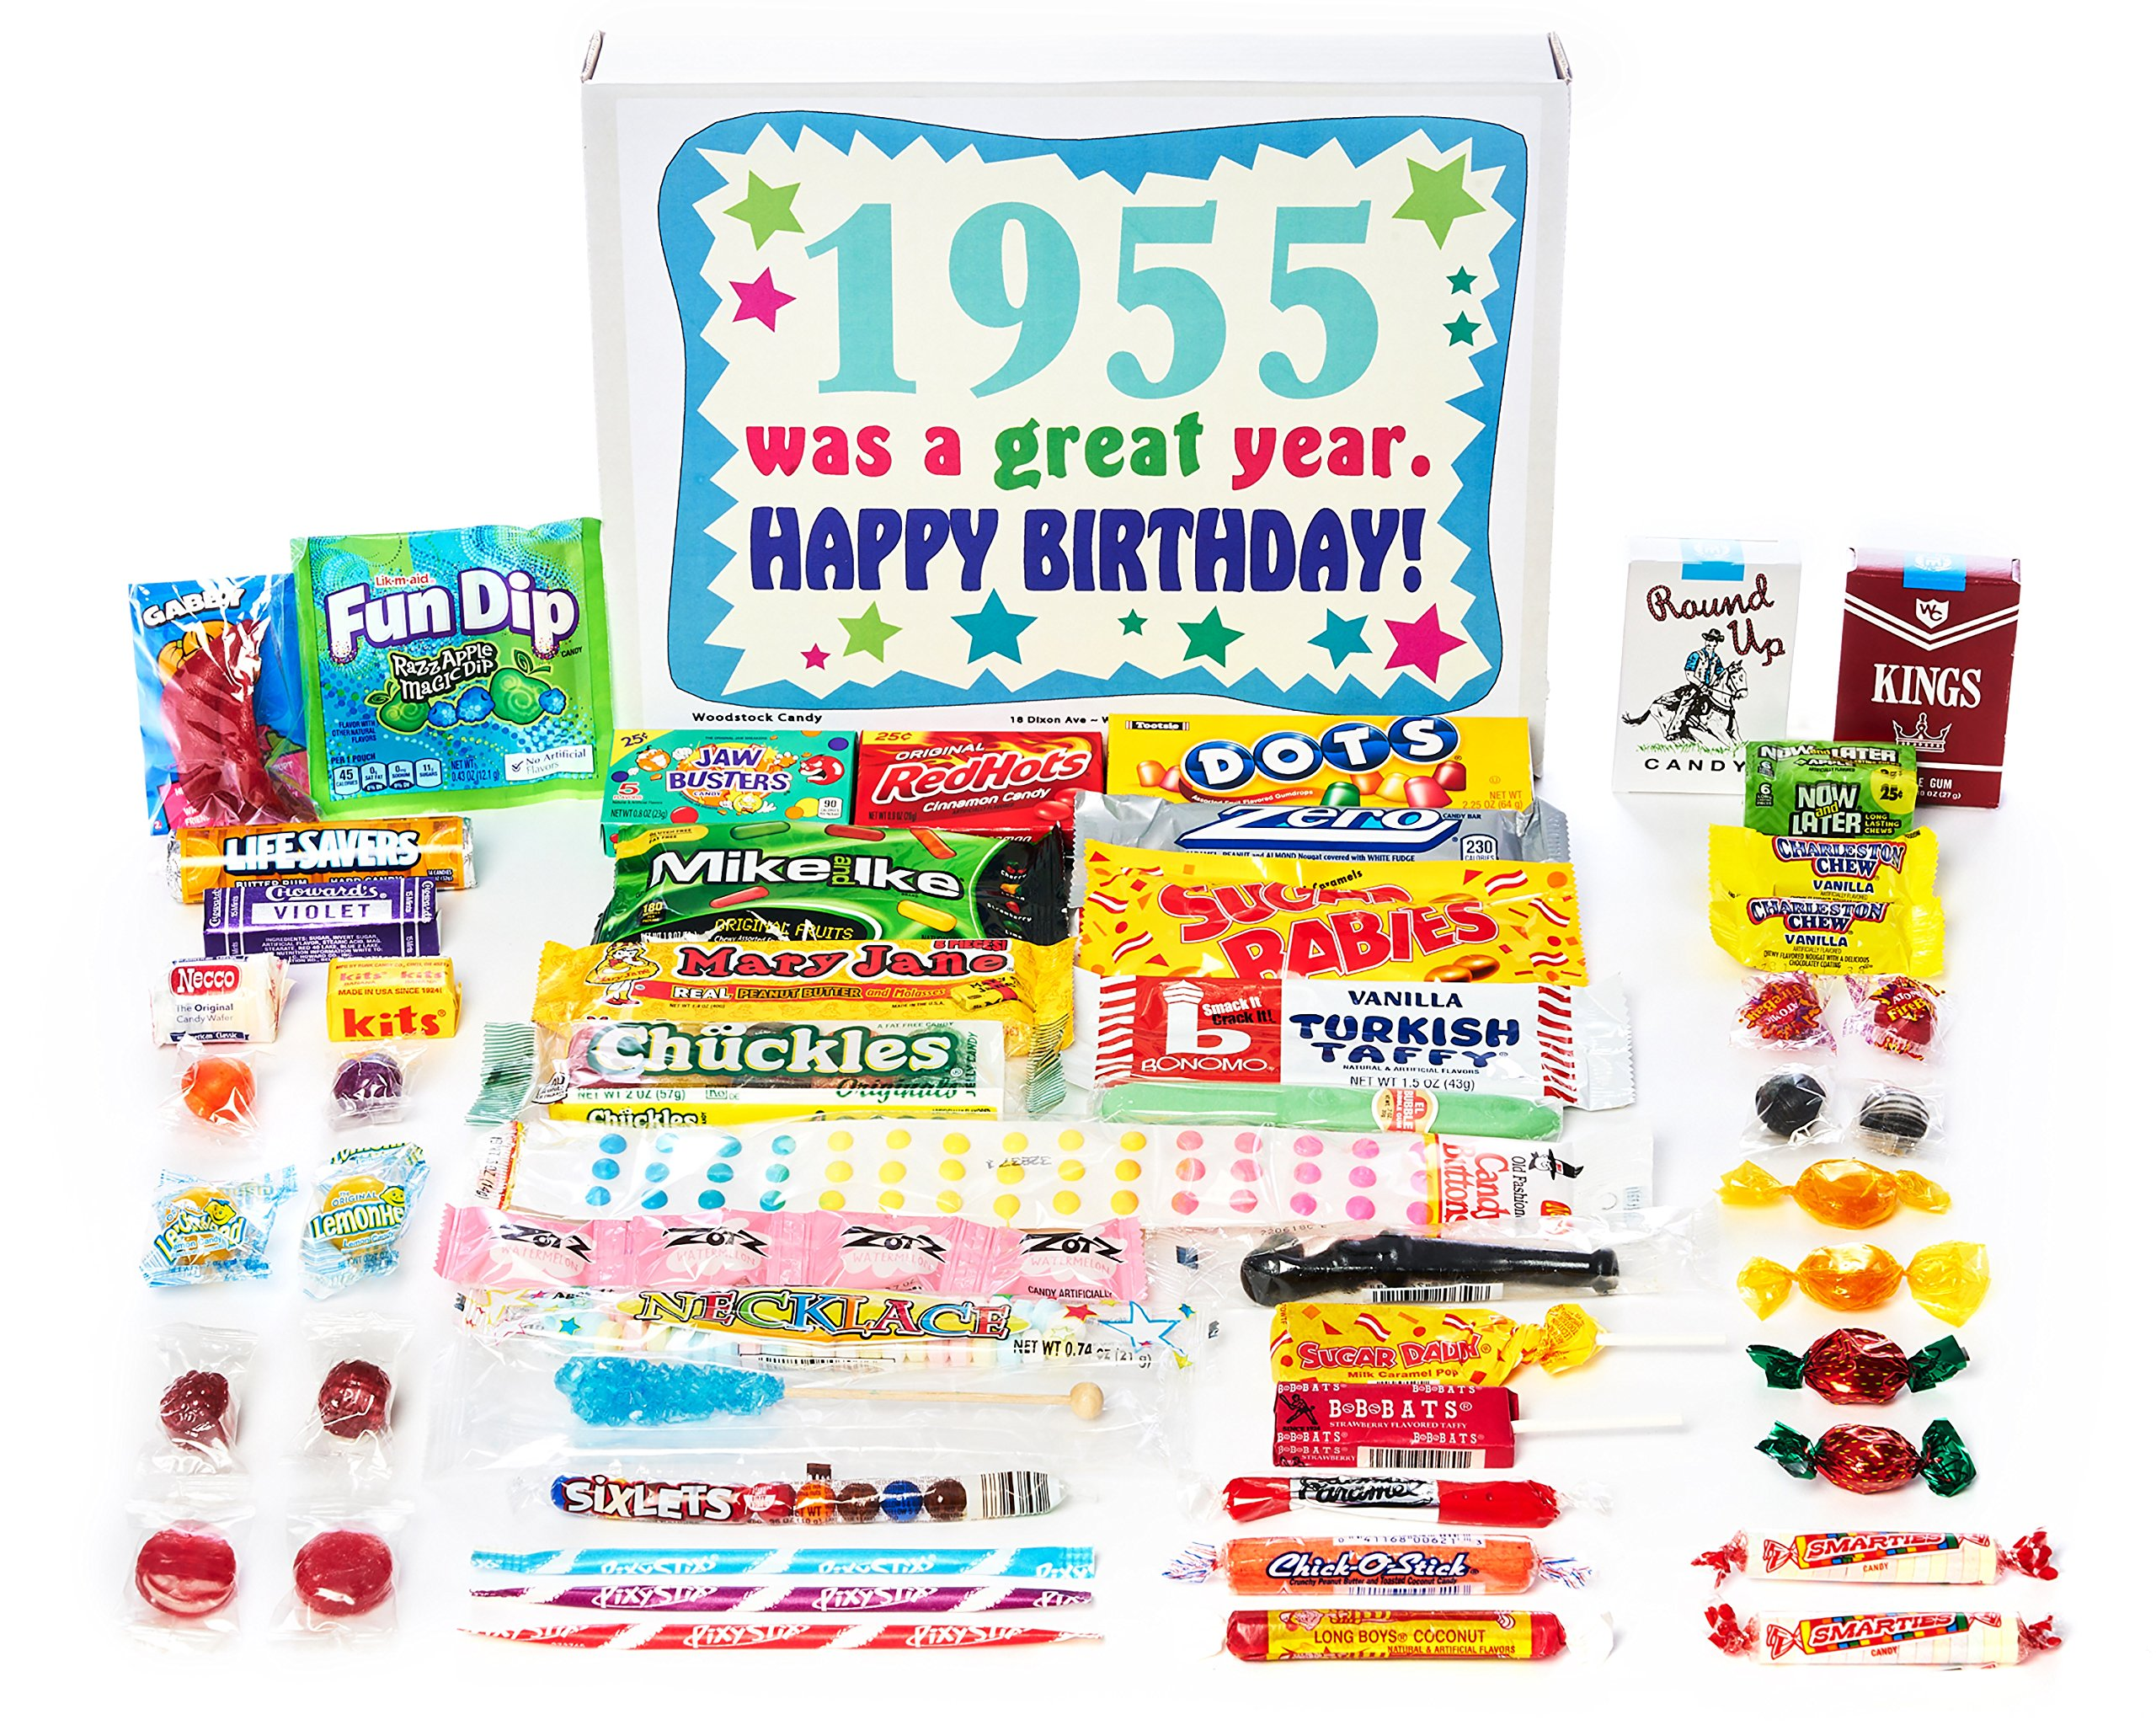 Woodstock Candy ~ 1955 64th Birthday Gift Box of Retro Nostalgic Candy Assortment from Childhood for 64 Year Old Man or Woman Born 1955